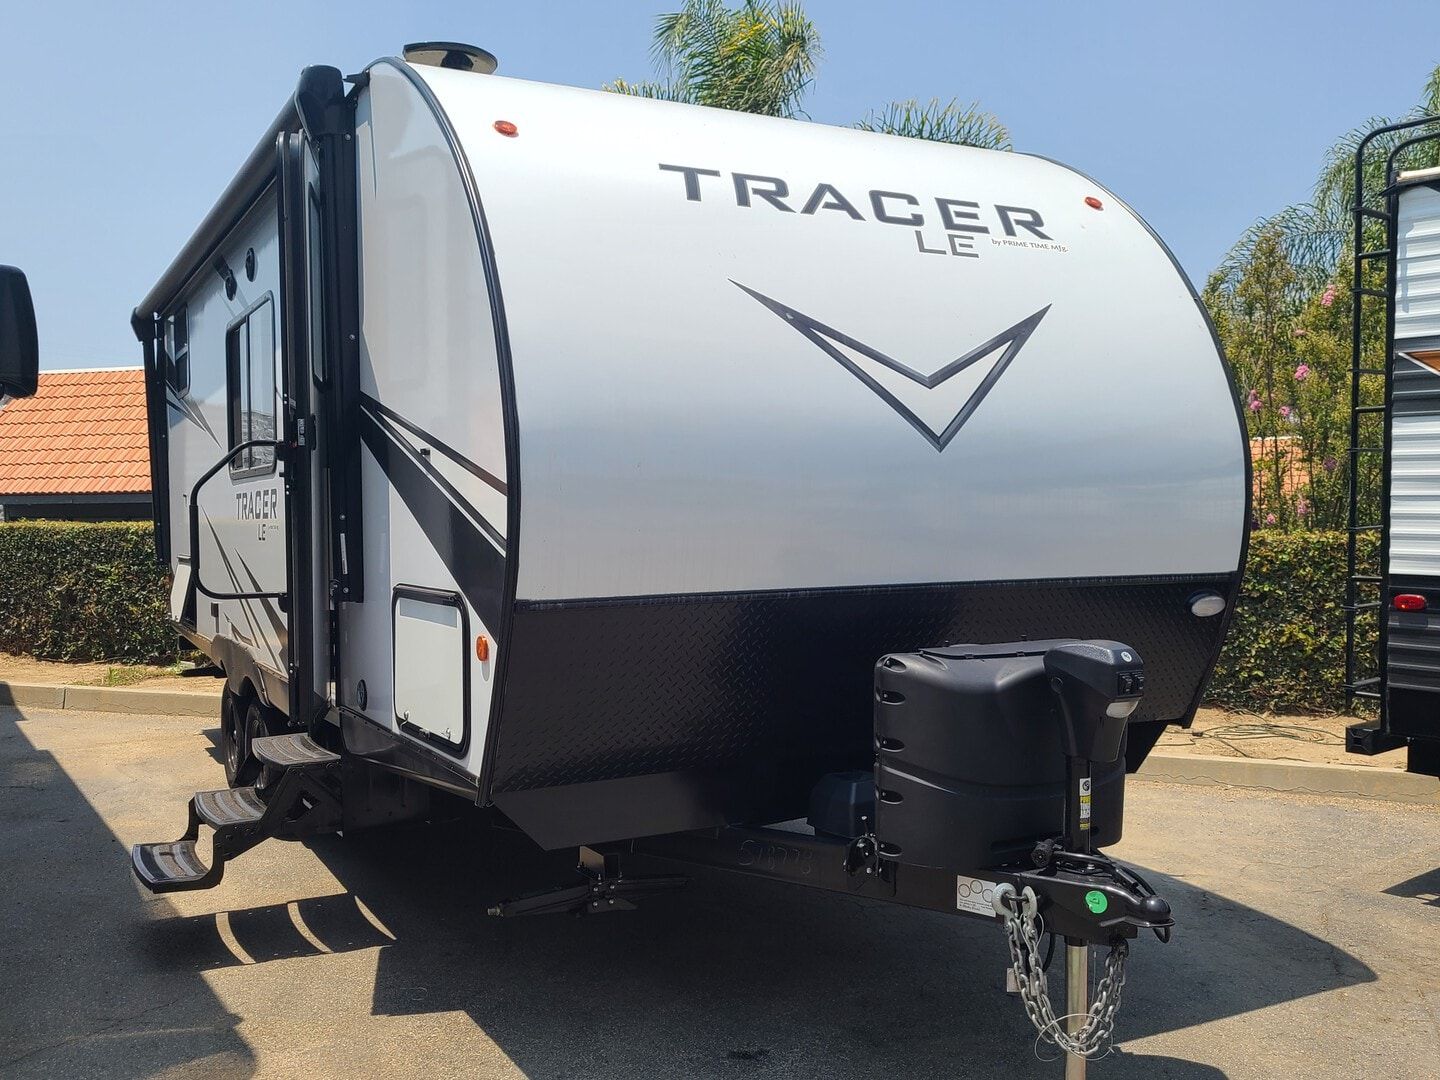 Used, 2021, Tracer, 200BHSLE, Travel Trailers